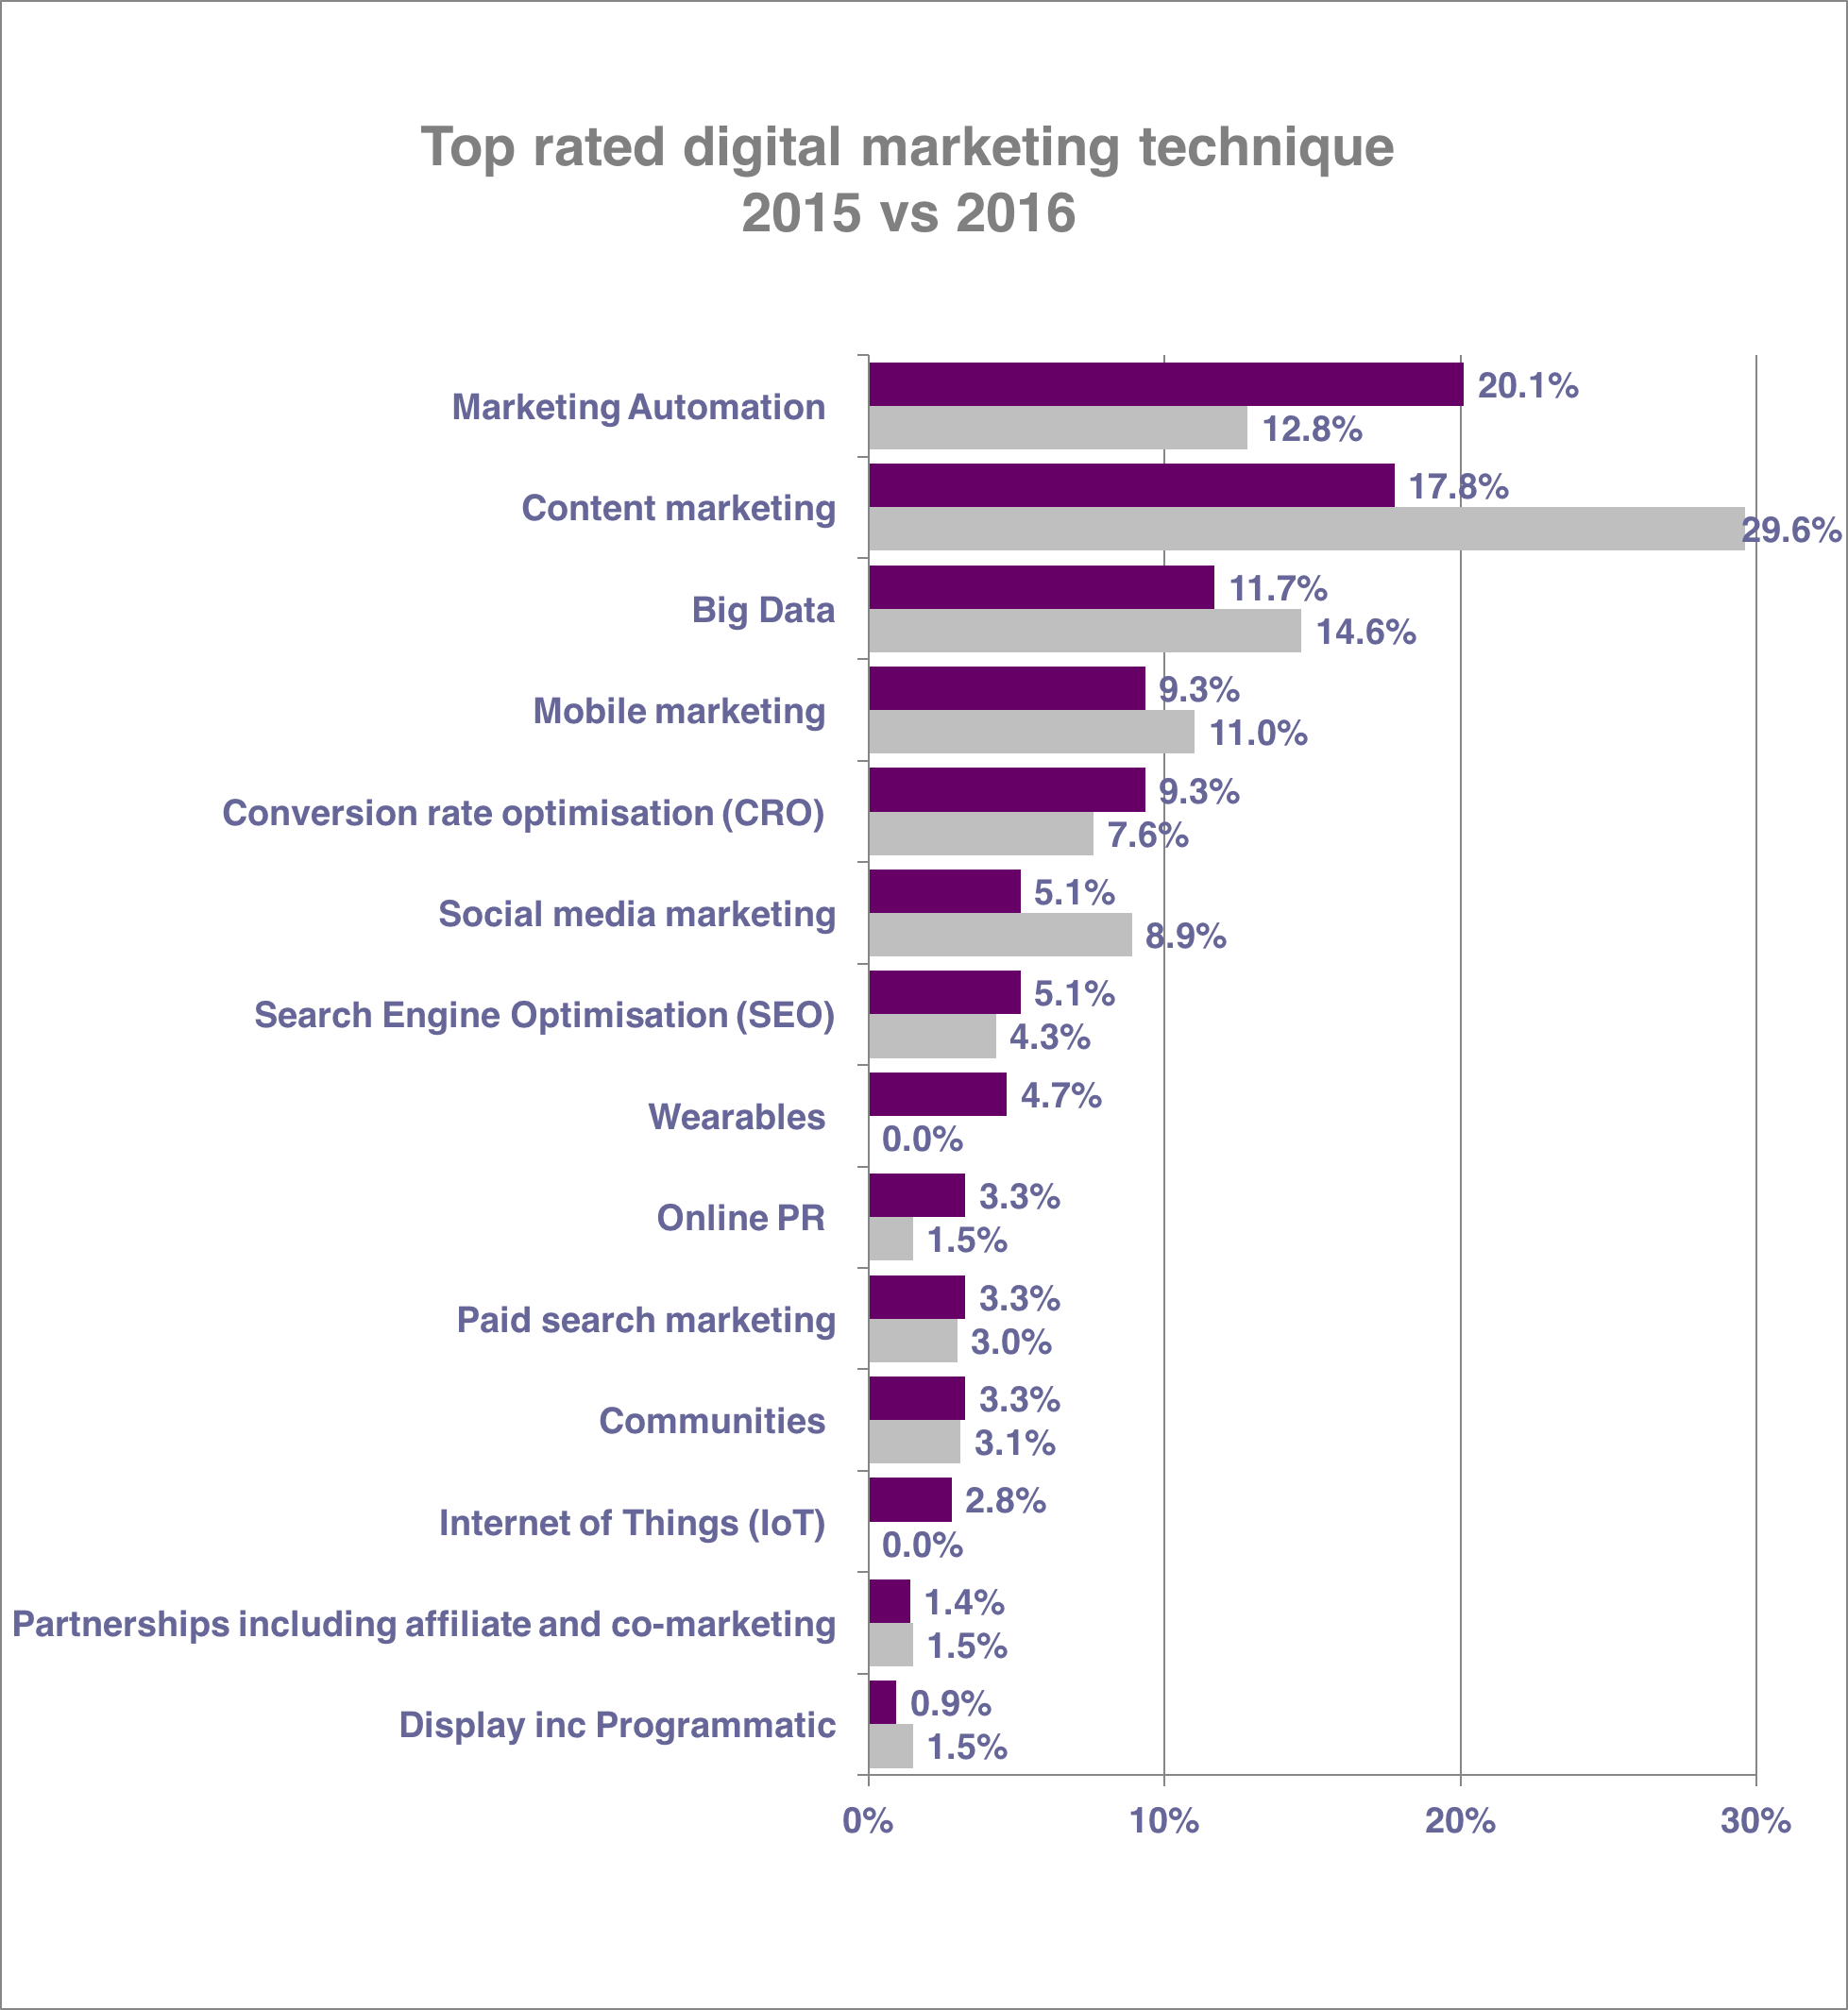 disciplinas marketing digital para 2016